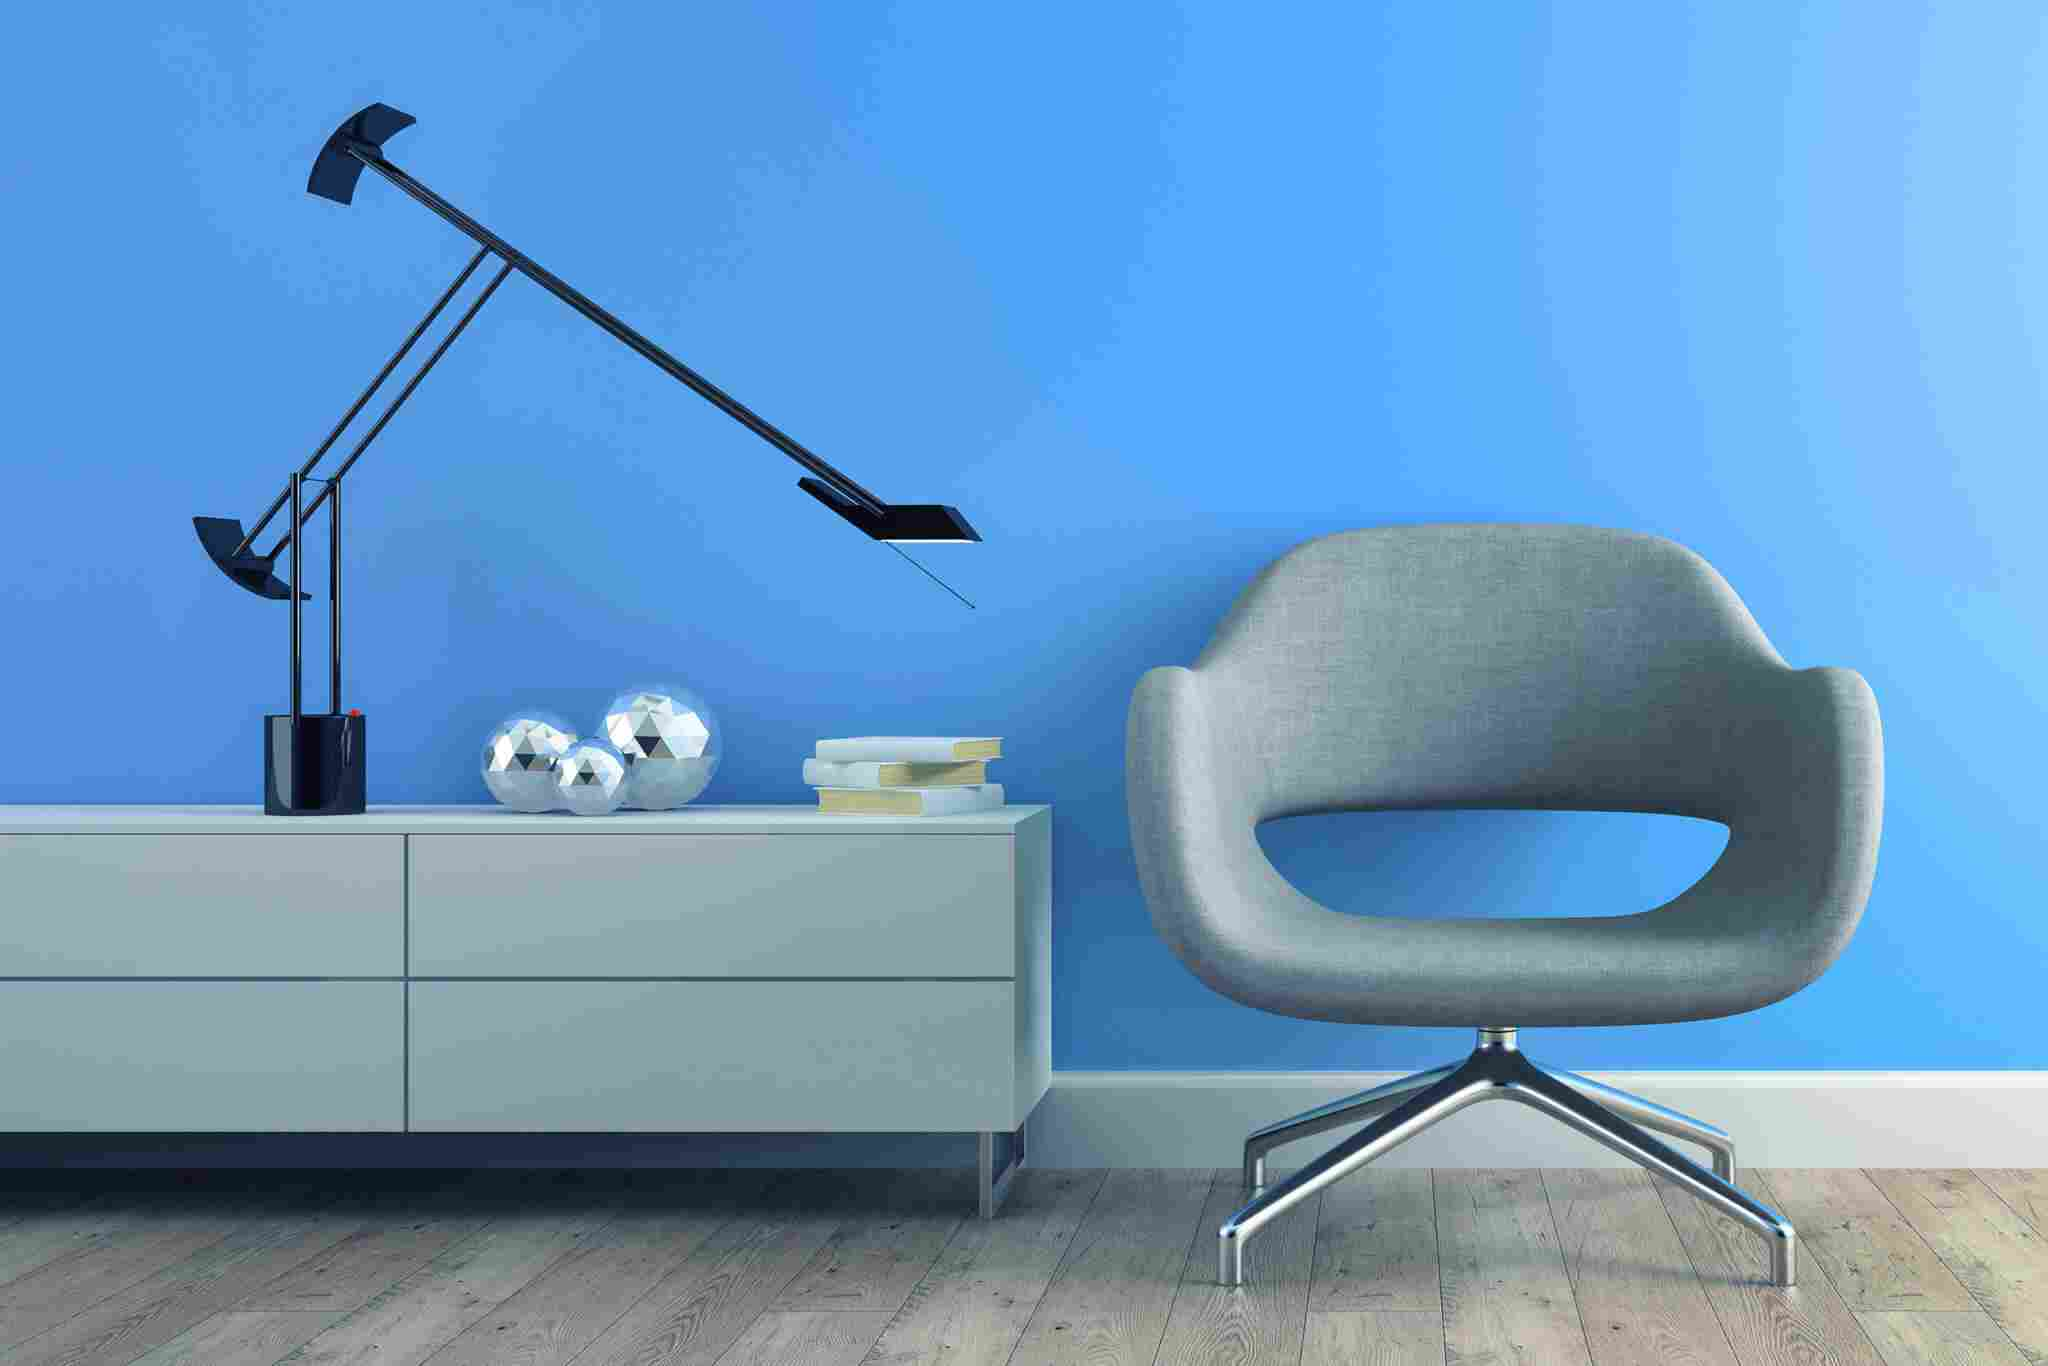 https://www.pikade.com/wp-content/uploads/2017/05/image-chair-blue-wall.jpg